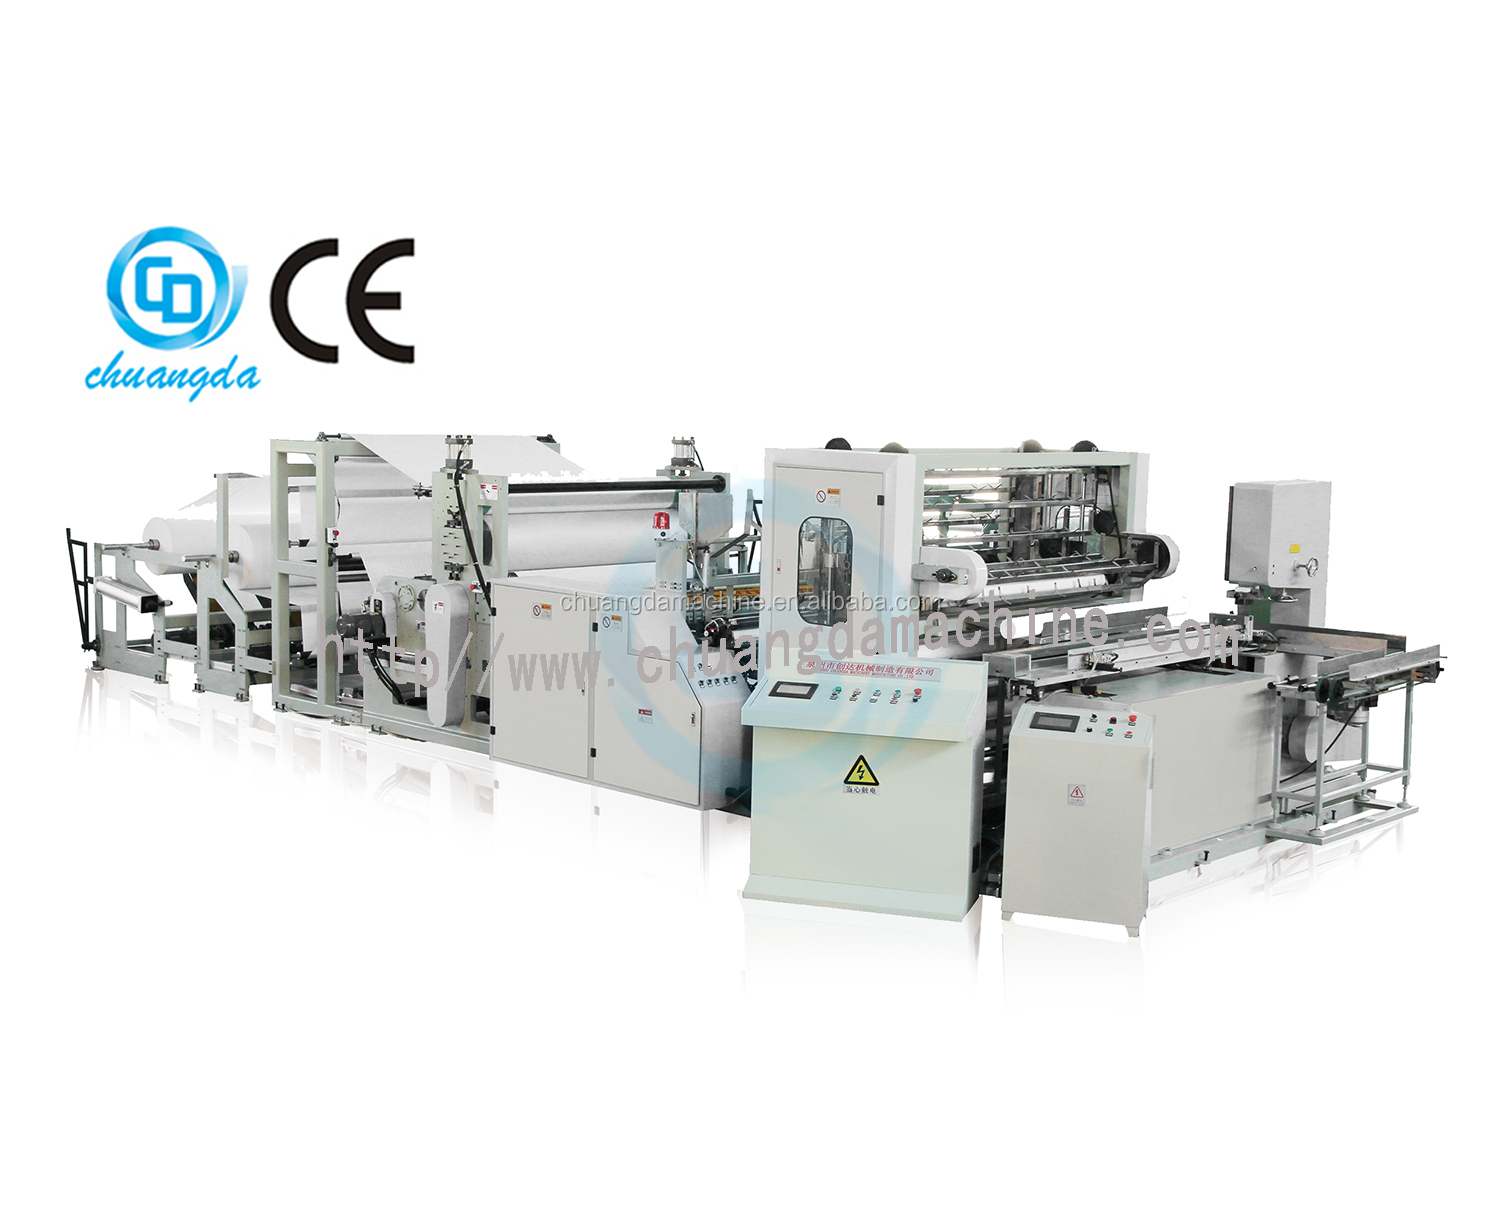 CDH-1575-GS Kitchen towel roll making machine